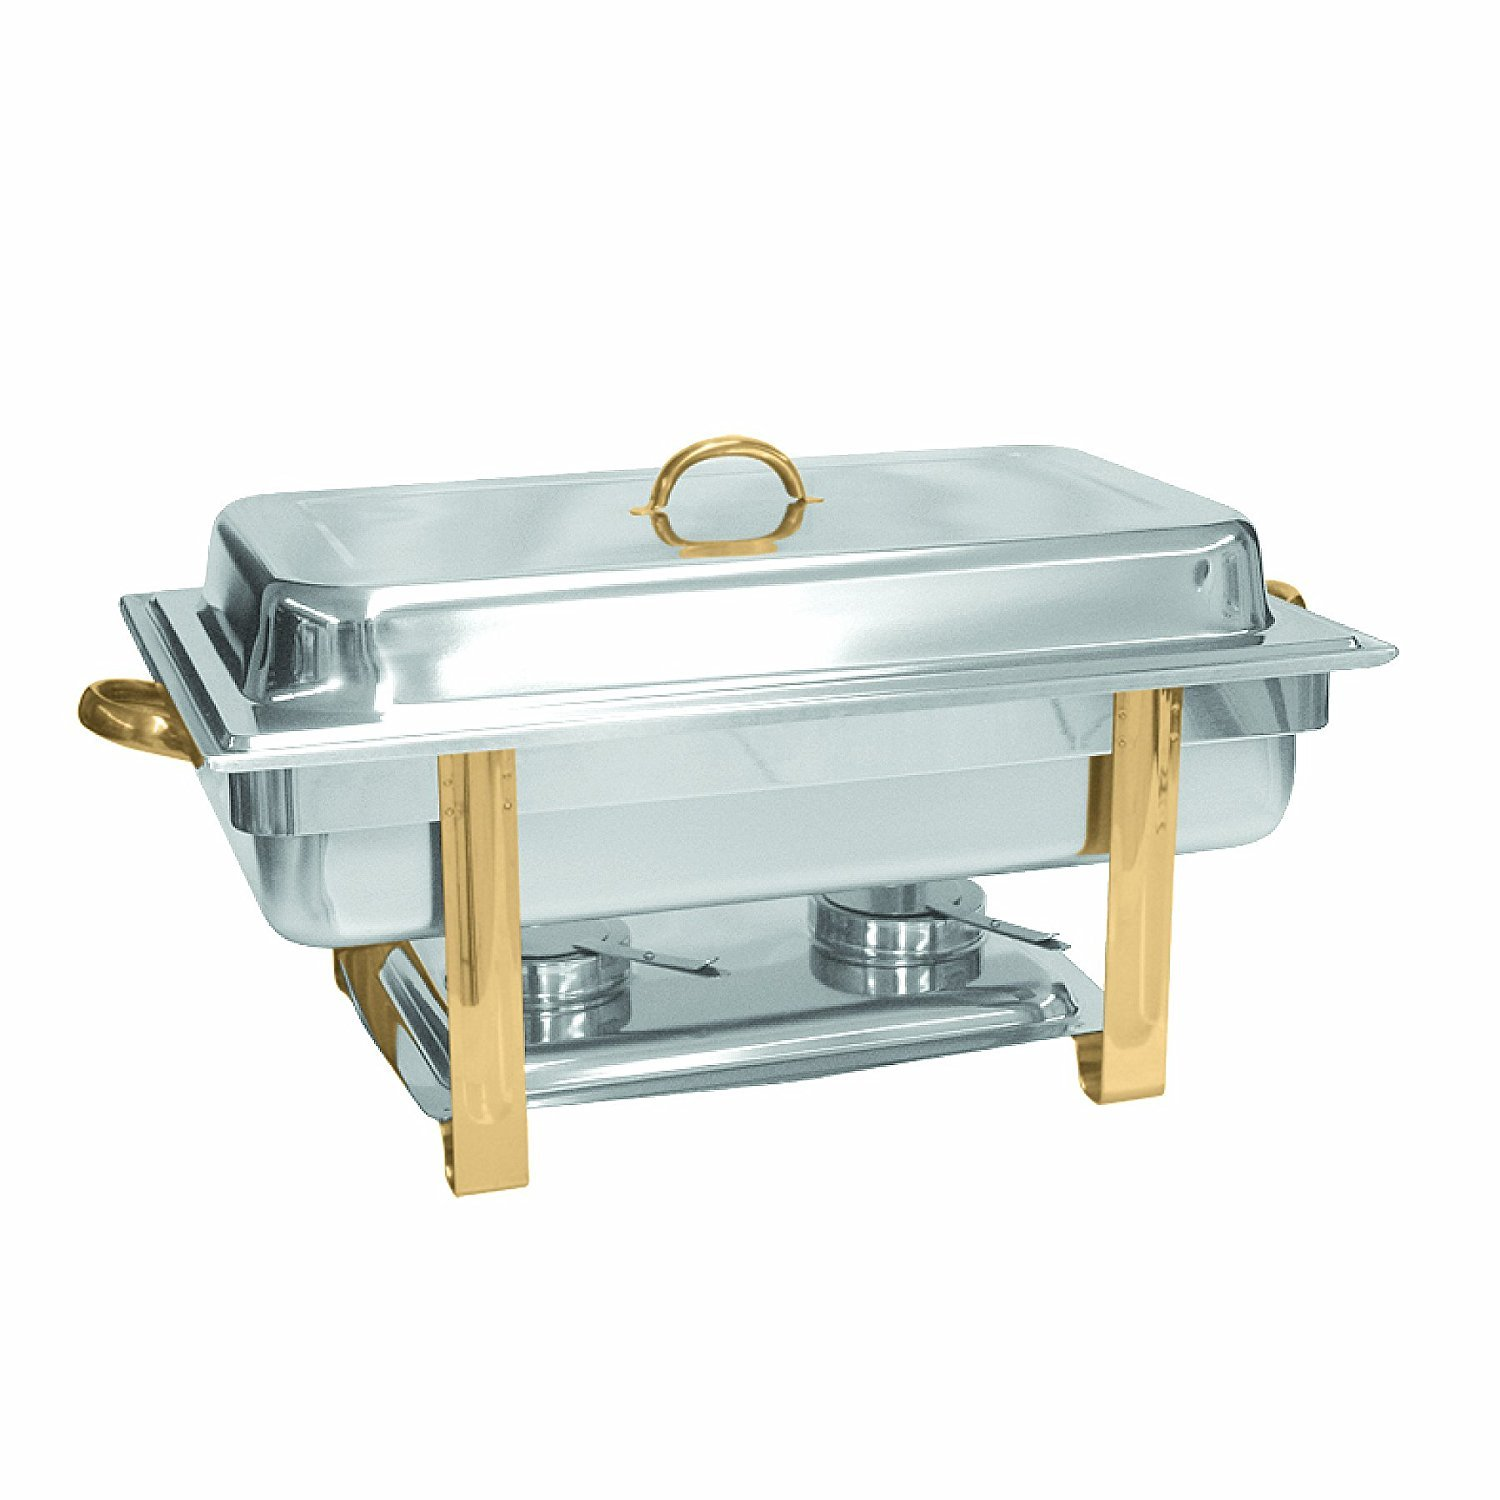 Tiger Chef 8 Quart Full Size Buffet Chafing Dish Set with Gold Accents and Gel Fuel Cans